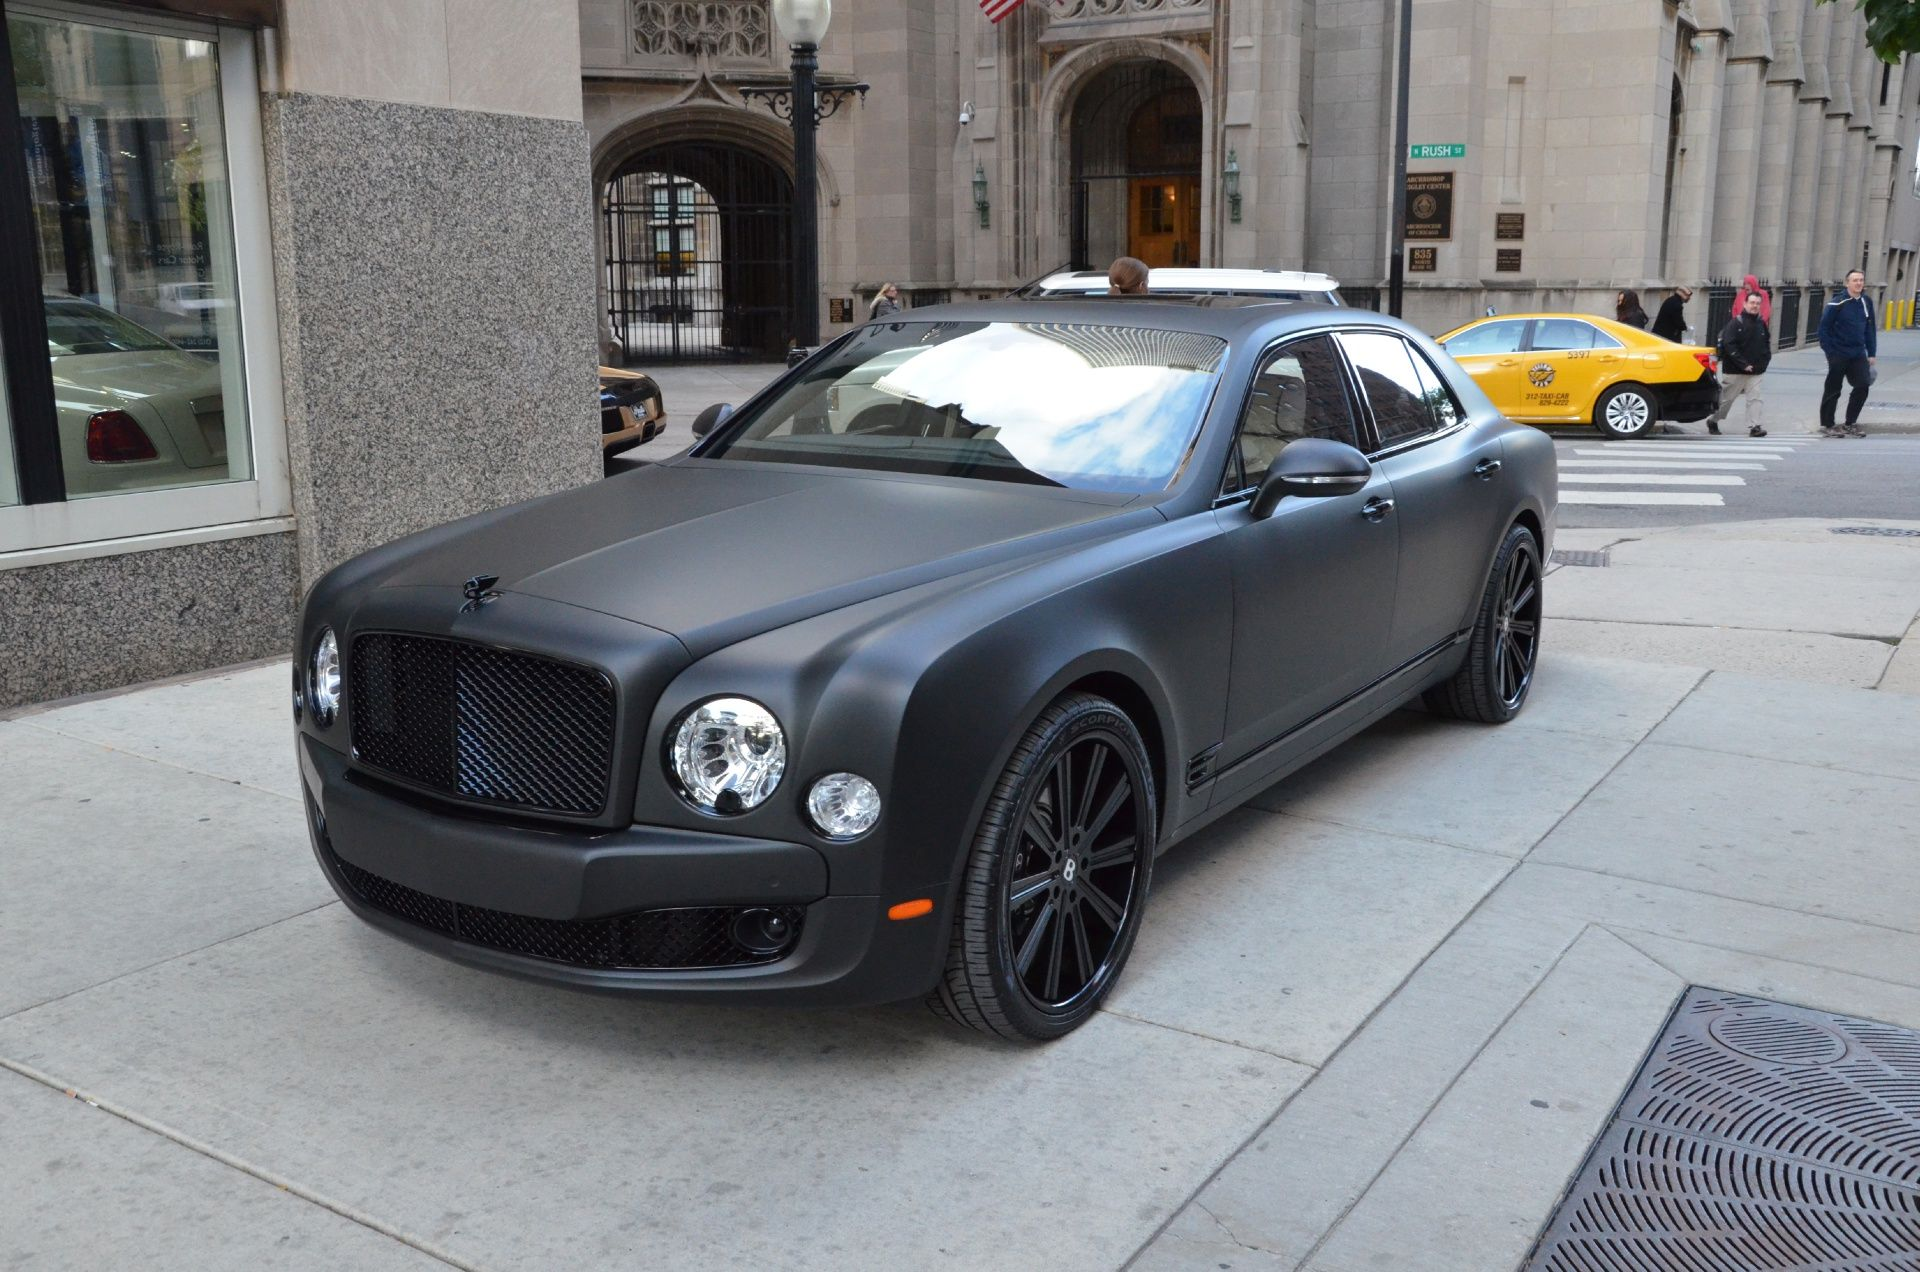 bentley gold coast is a luxury motor car dealer located in downtown